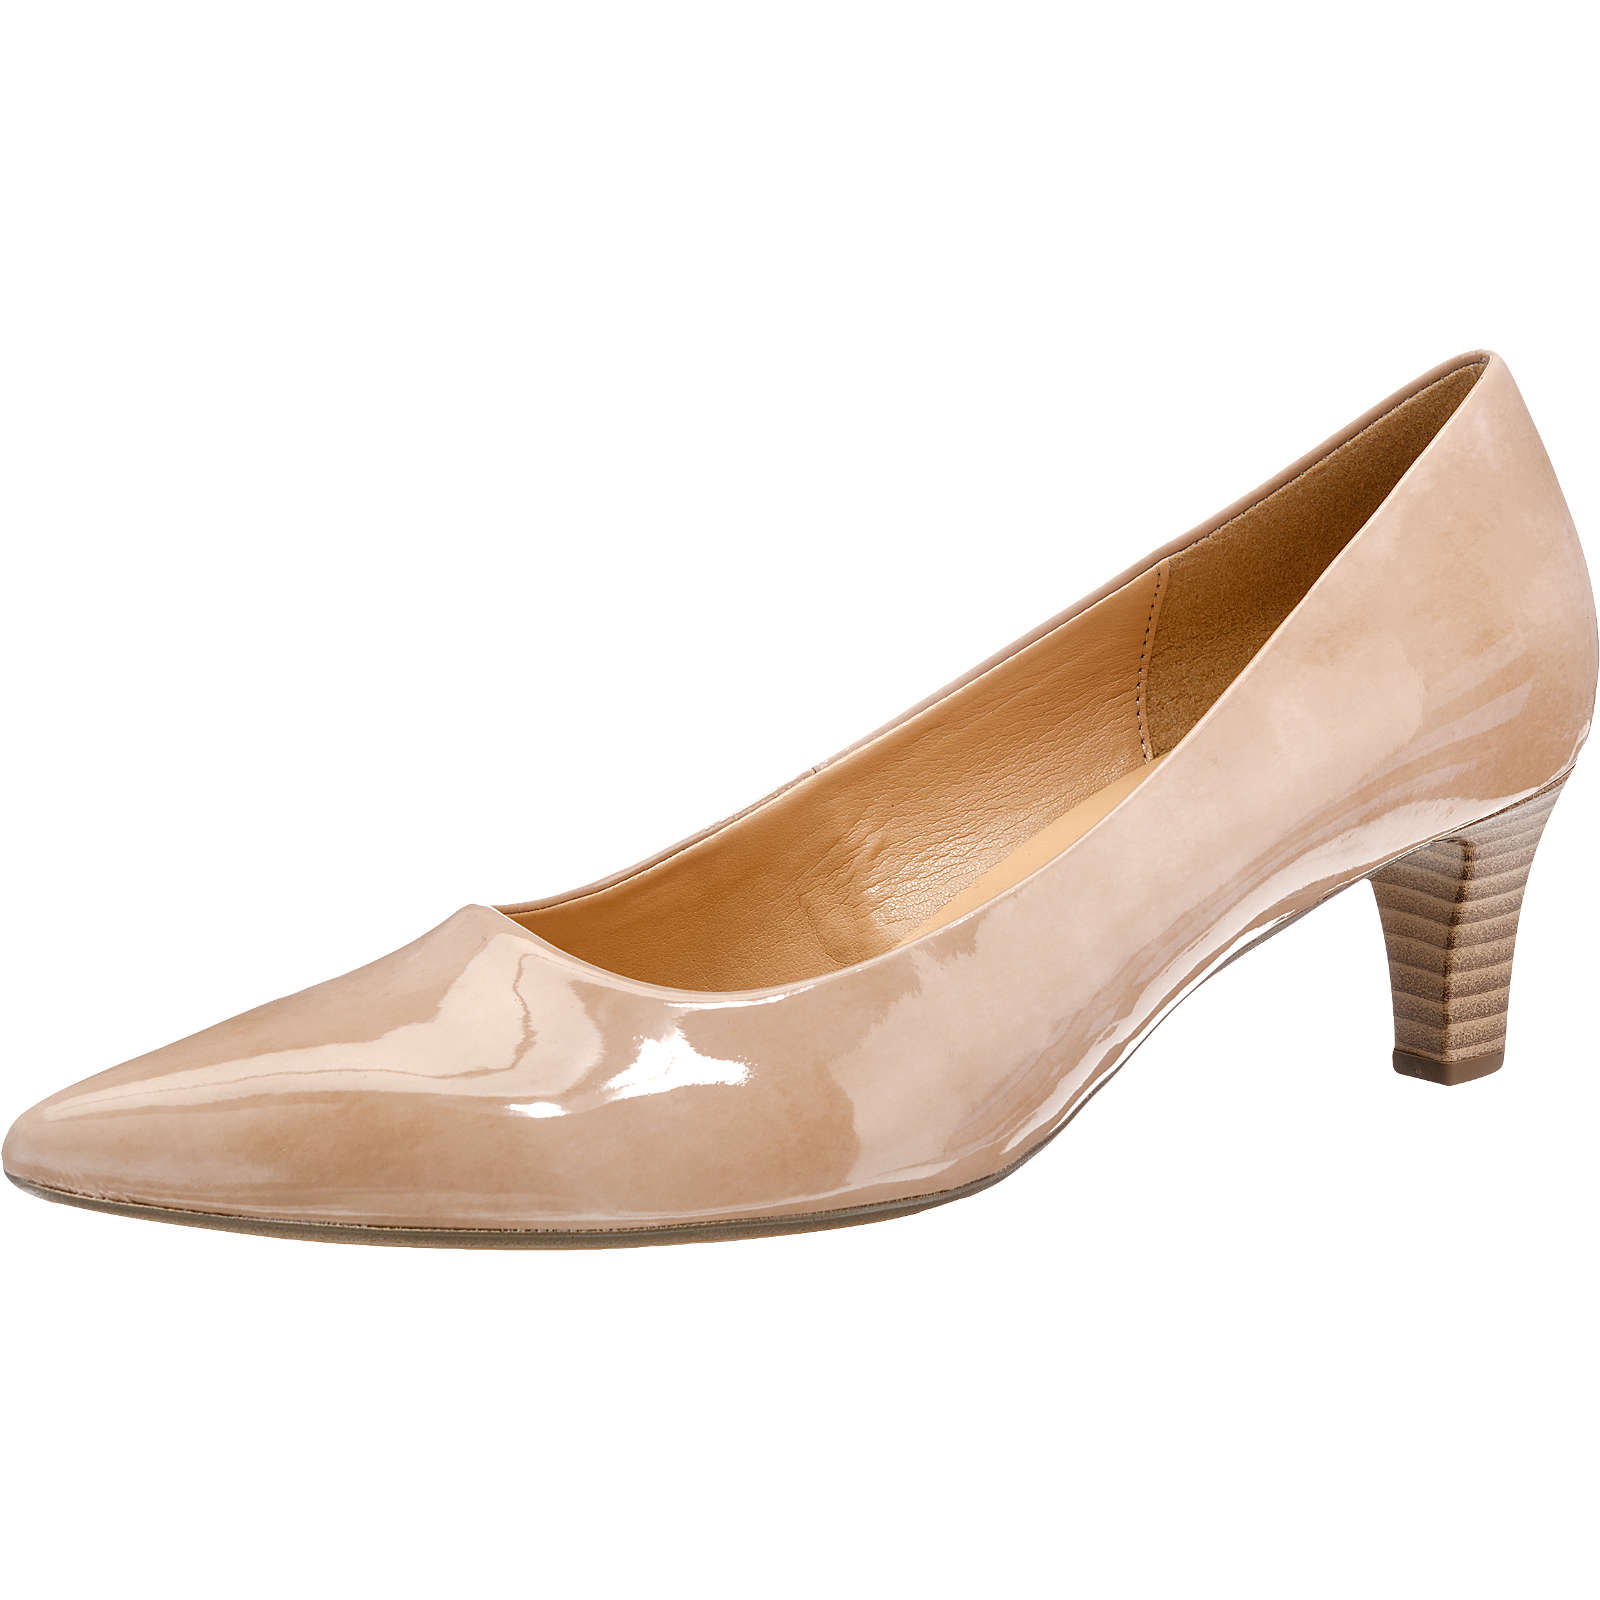 Gabor Pumps beige Damen Gr. 38,5